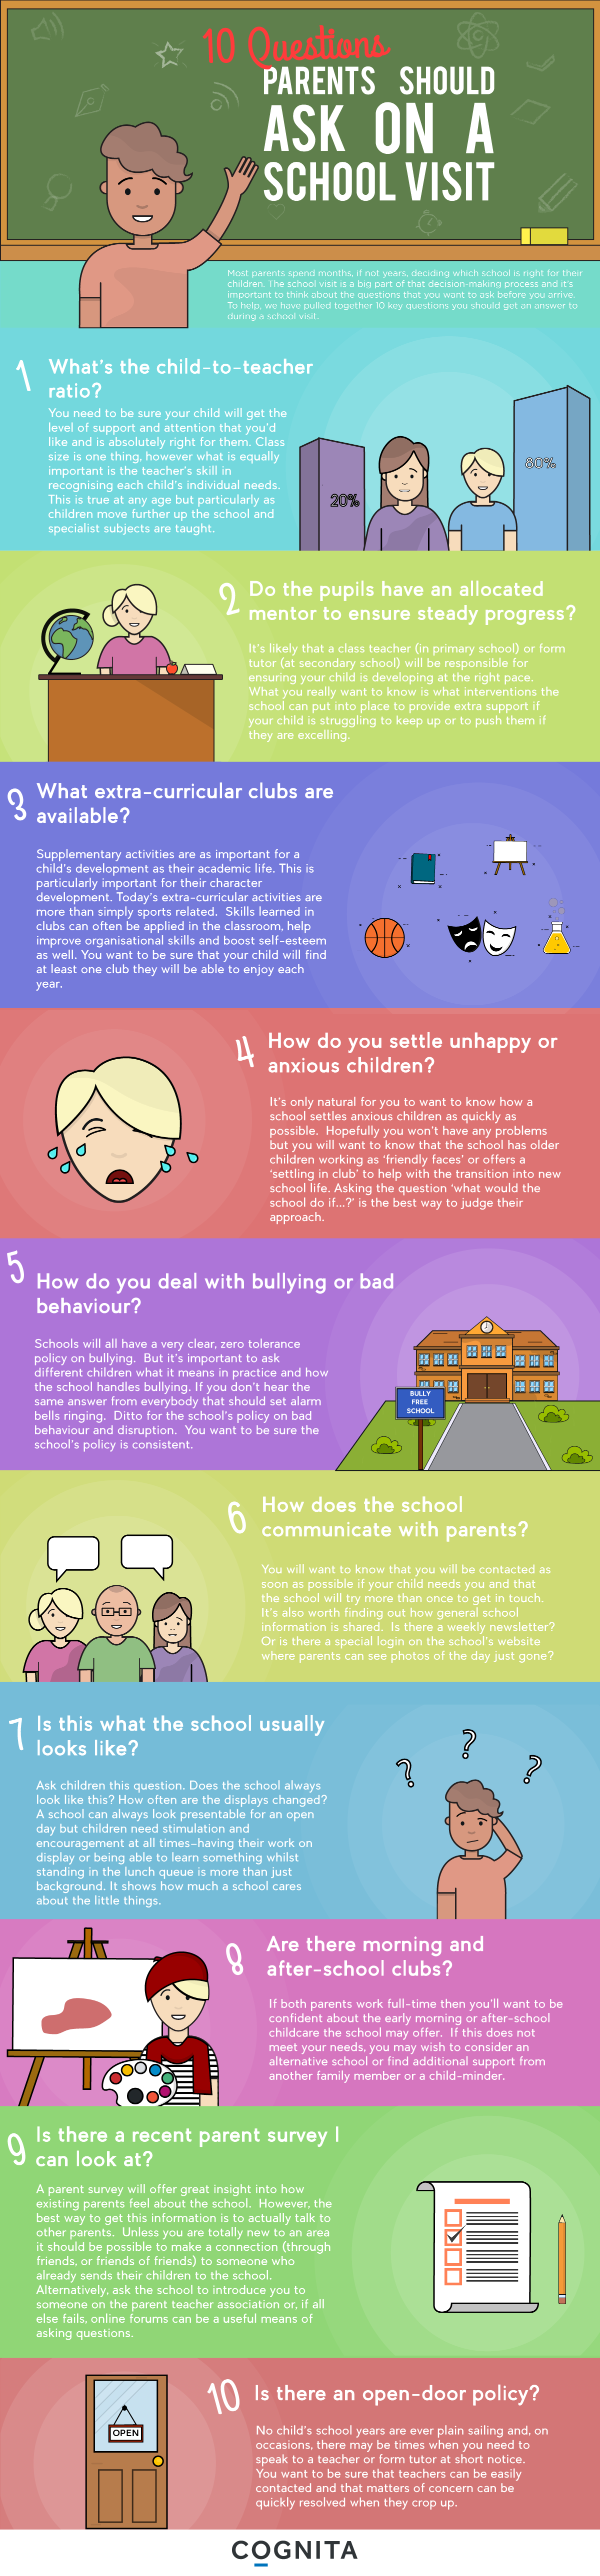 Top Questions to ask on A School Visit